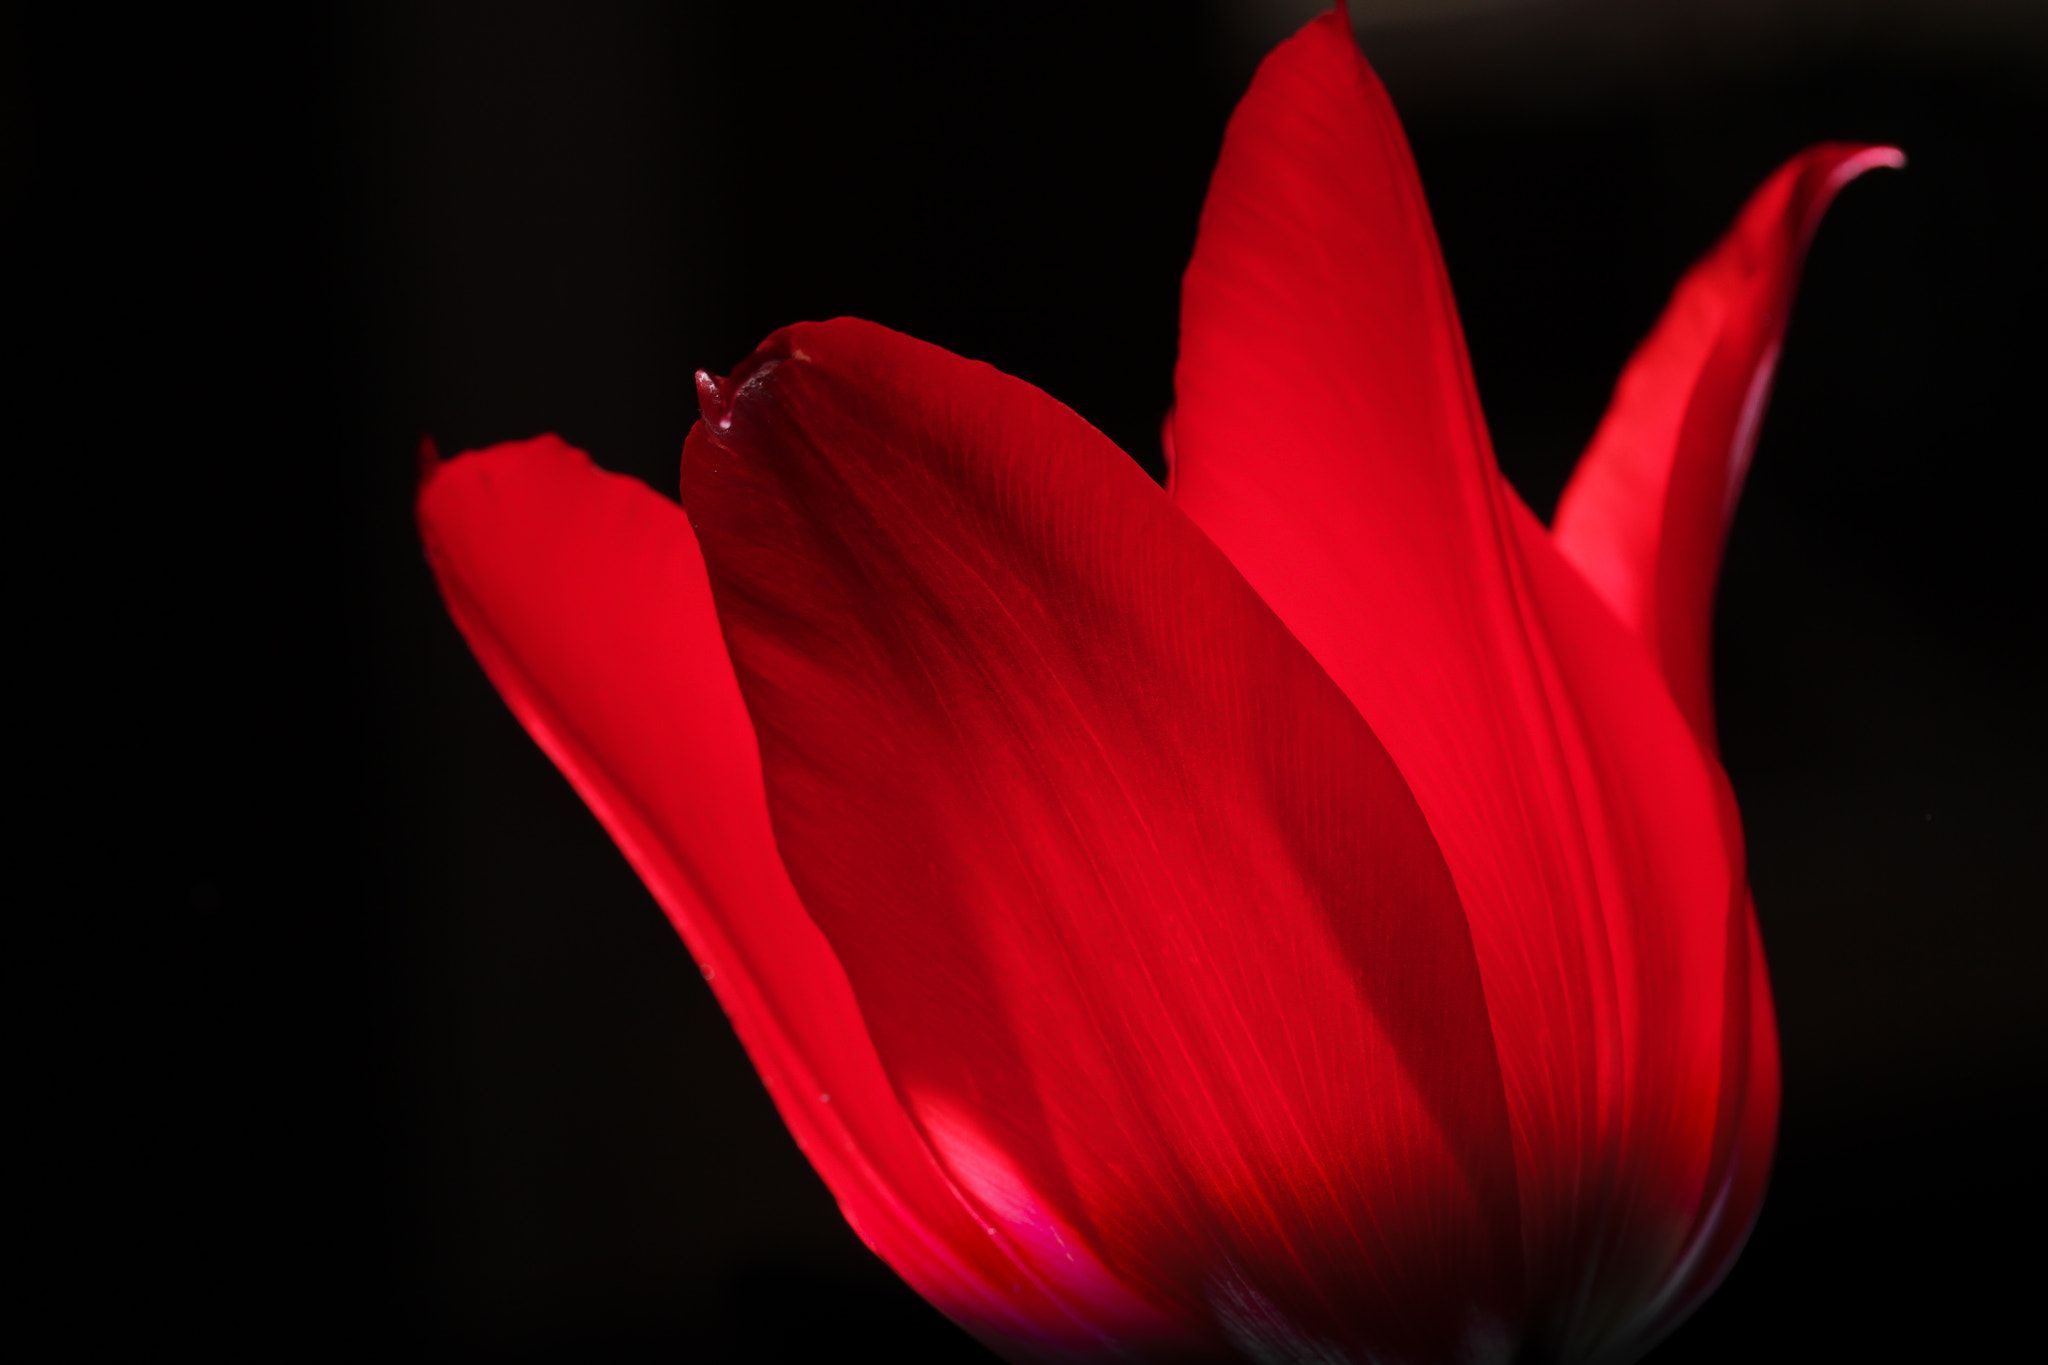 Photograph tulpe by Jens S. on 500px